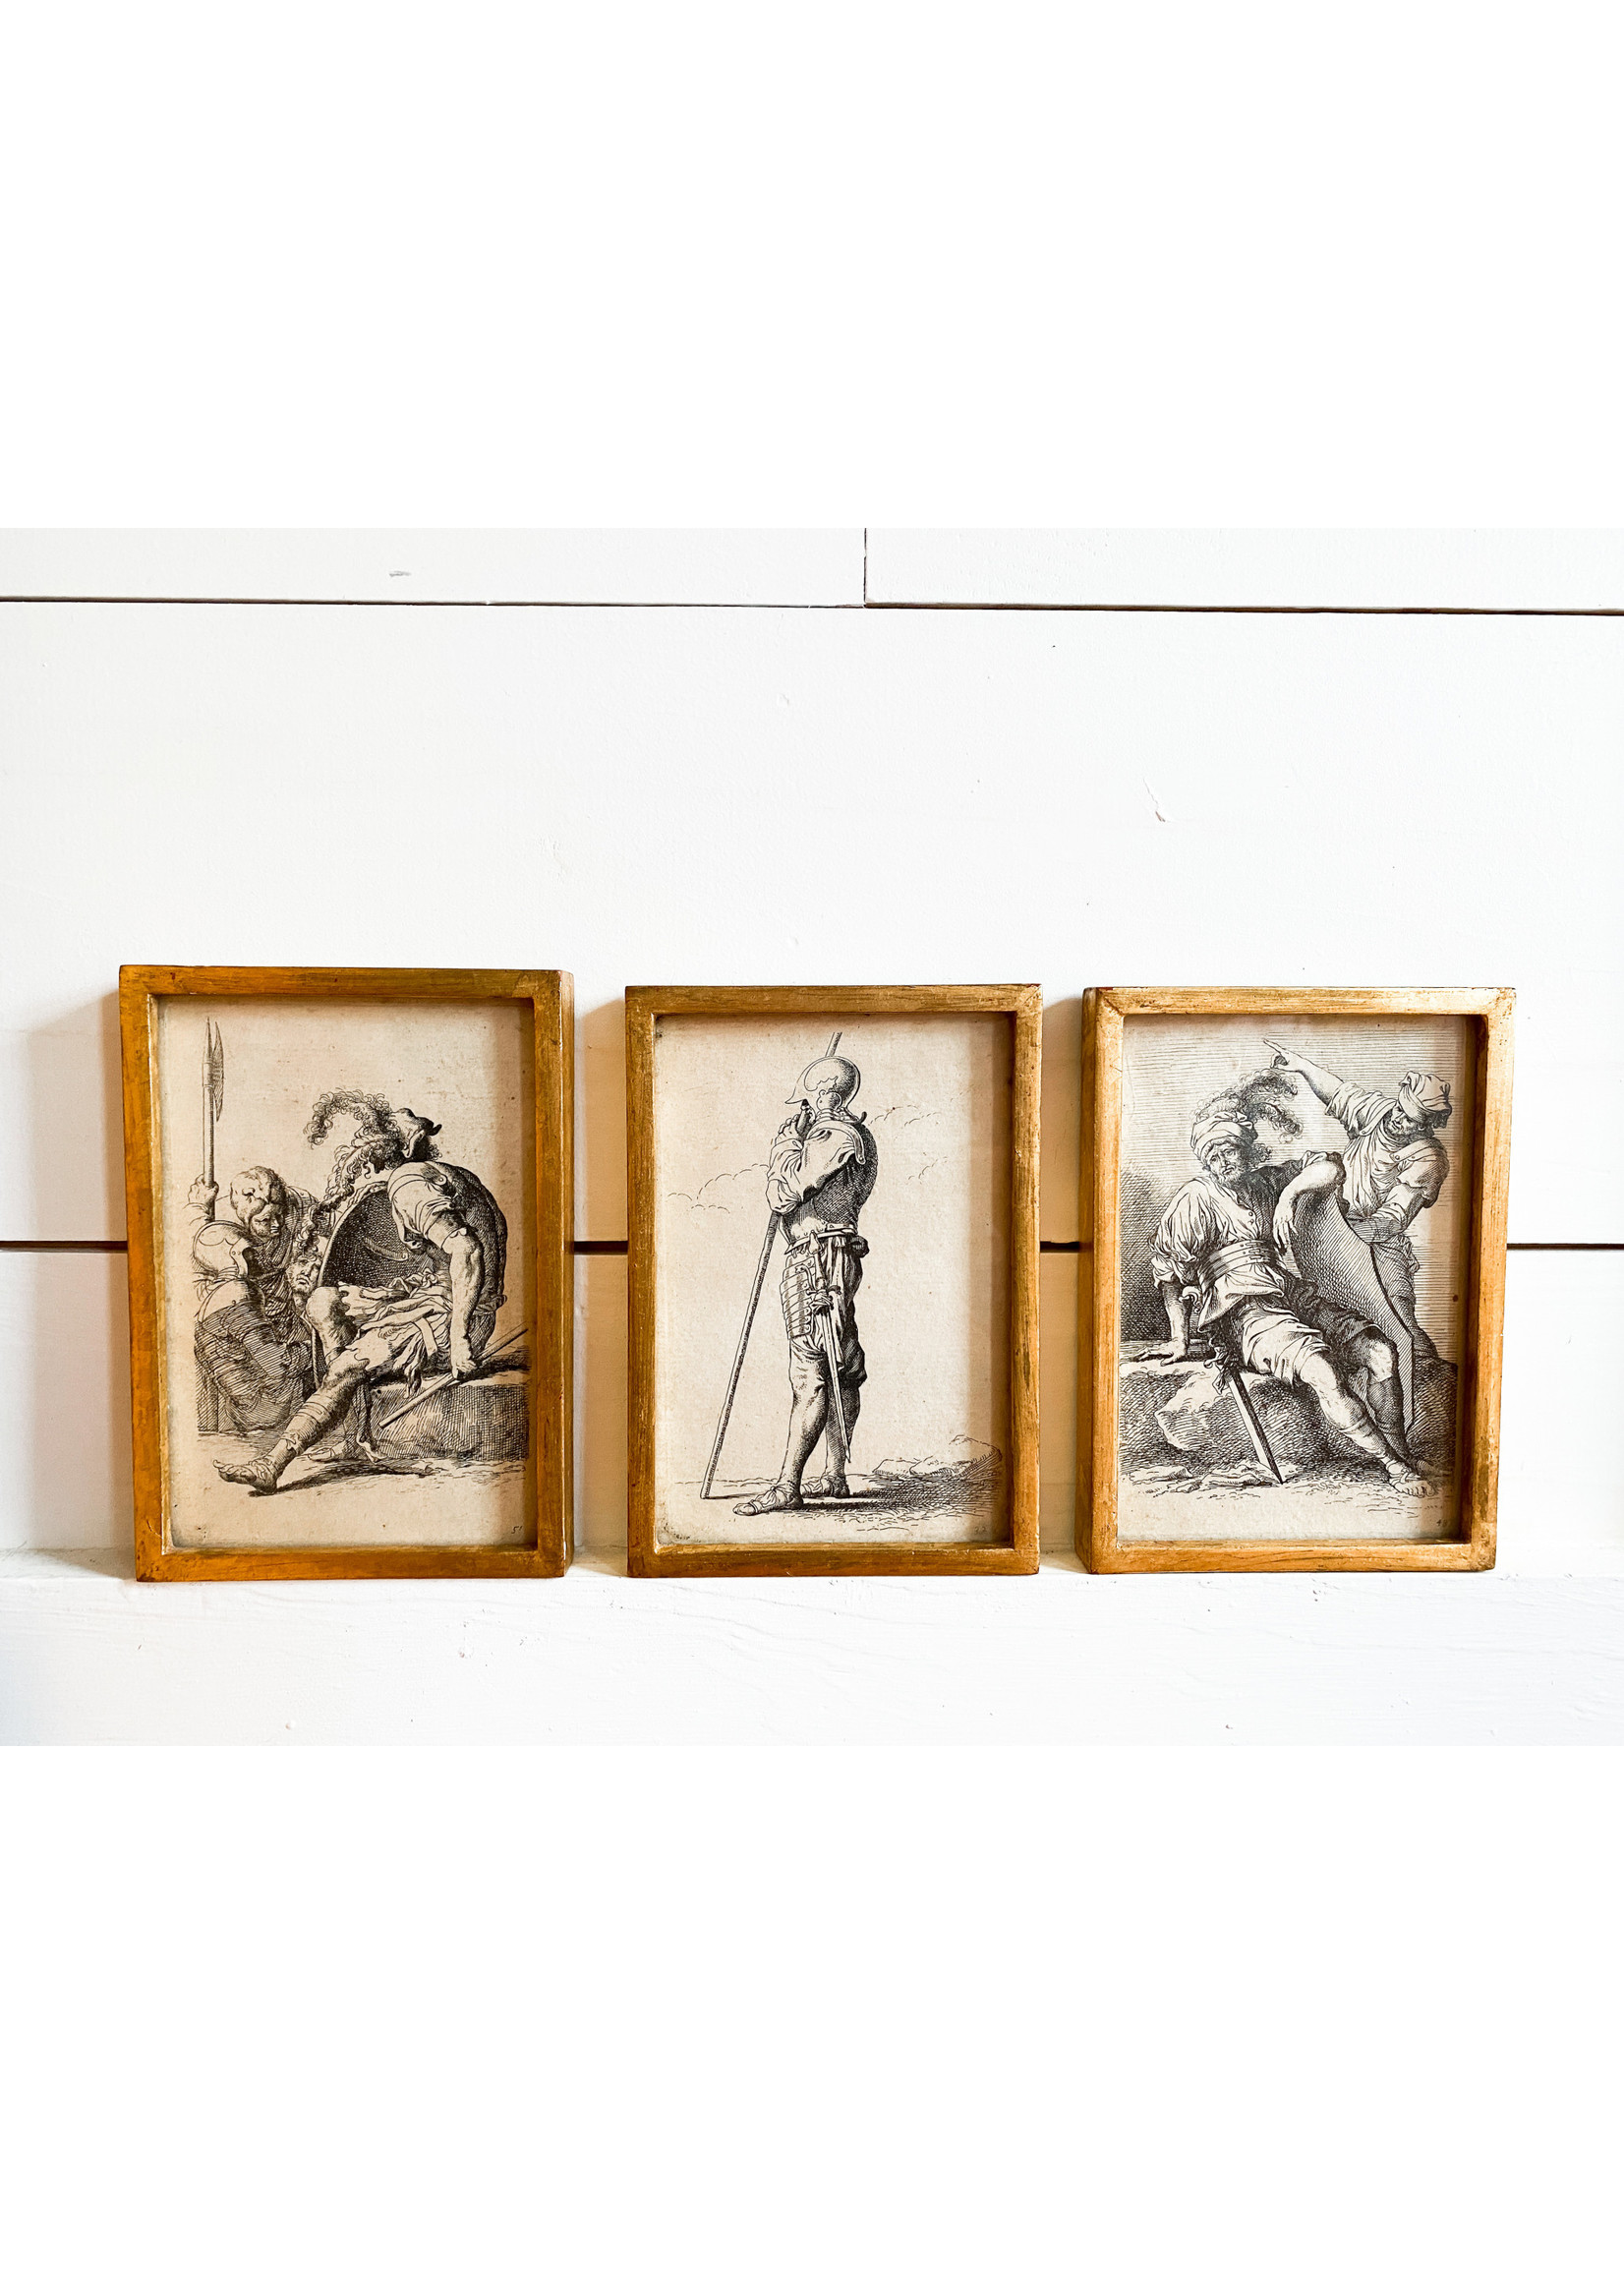 Antique Antique Rembrandt Etchings Early 18th c.